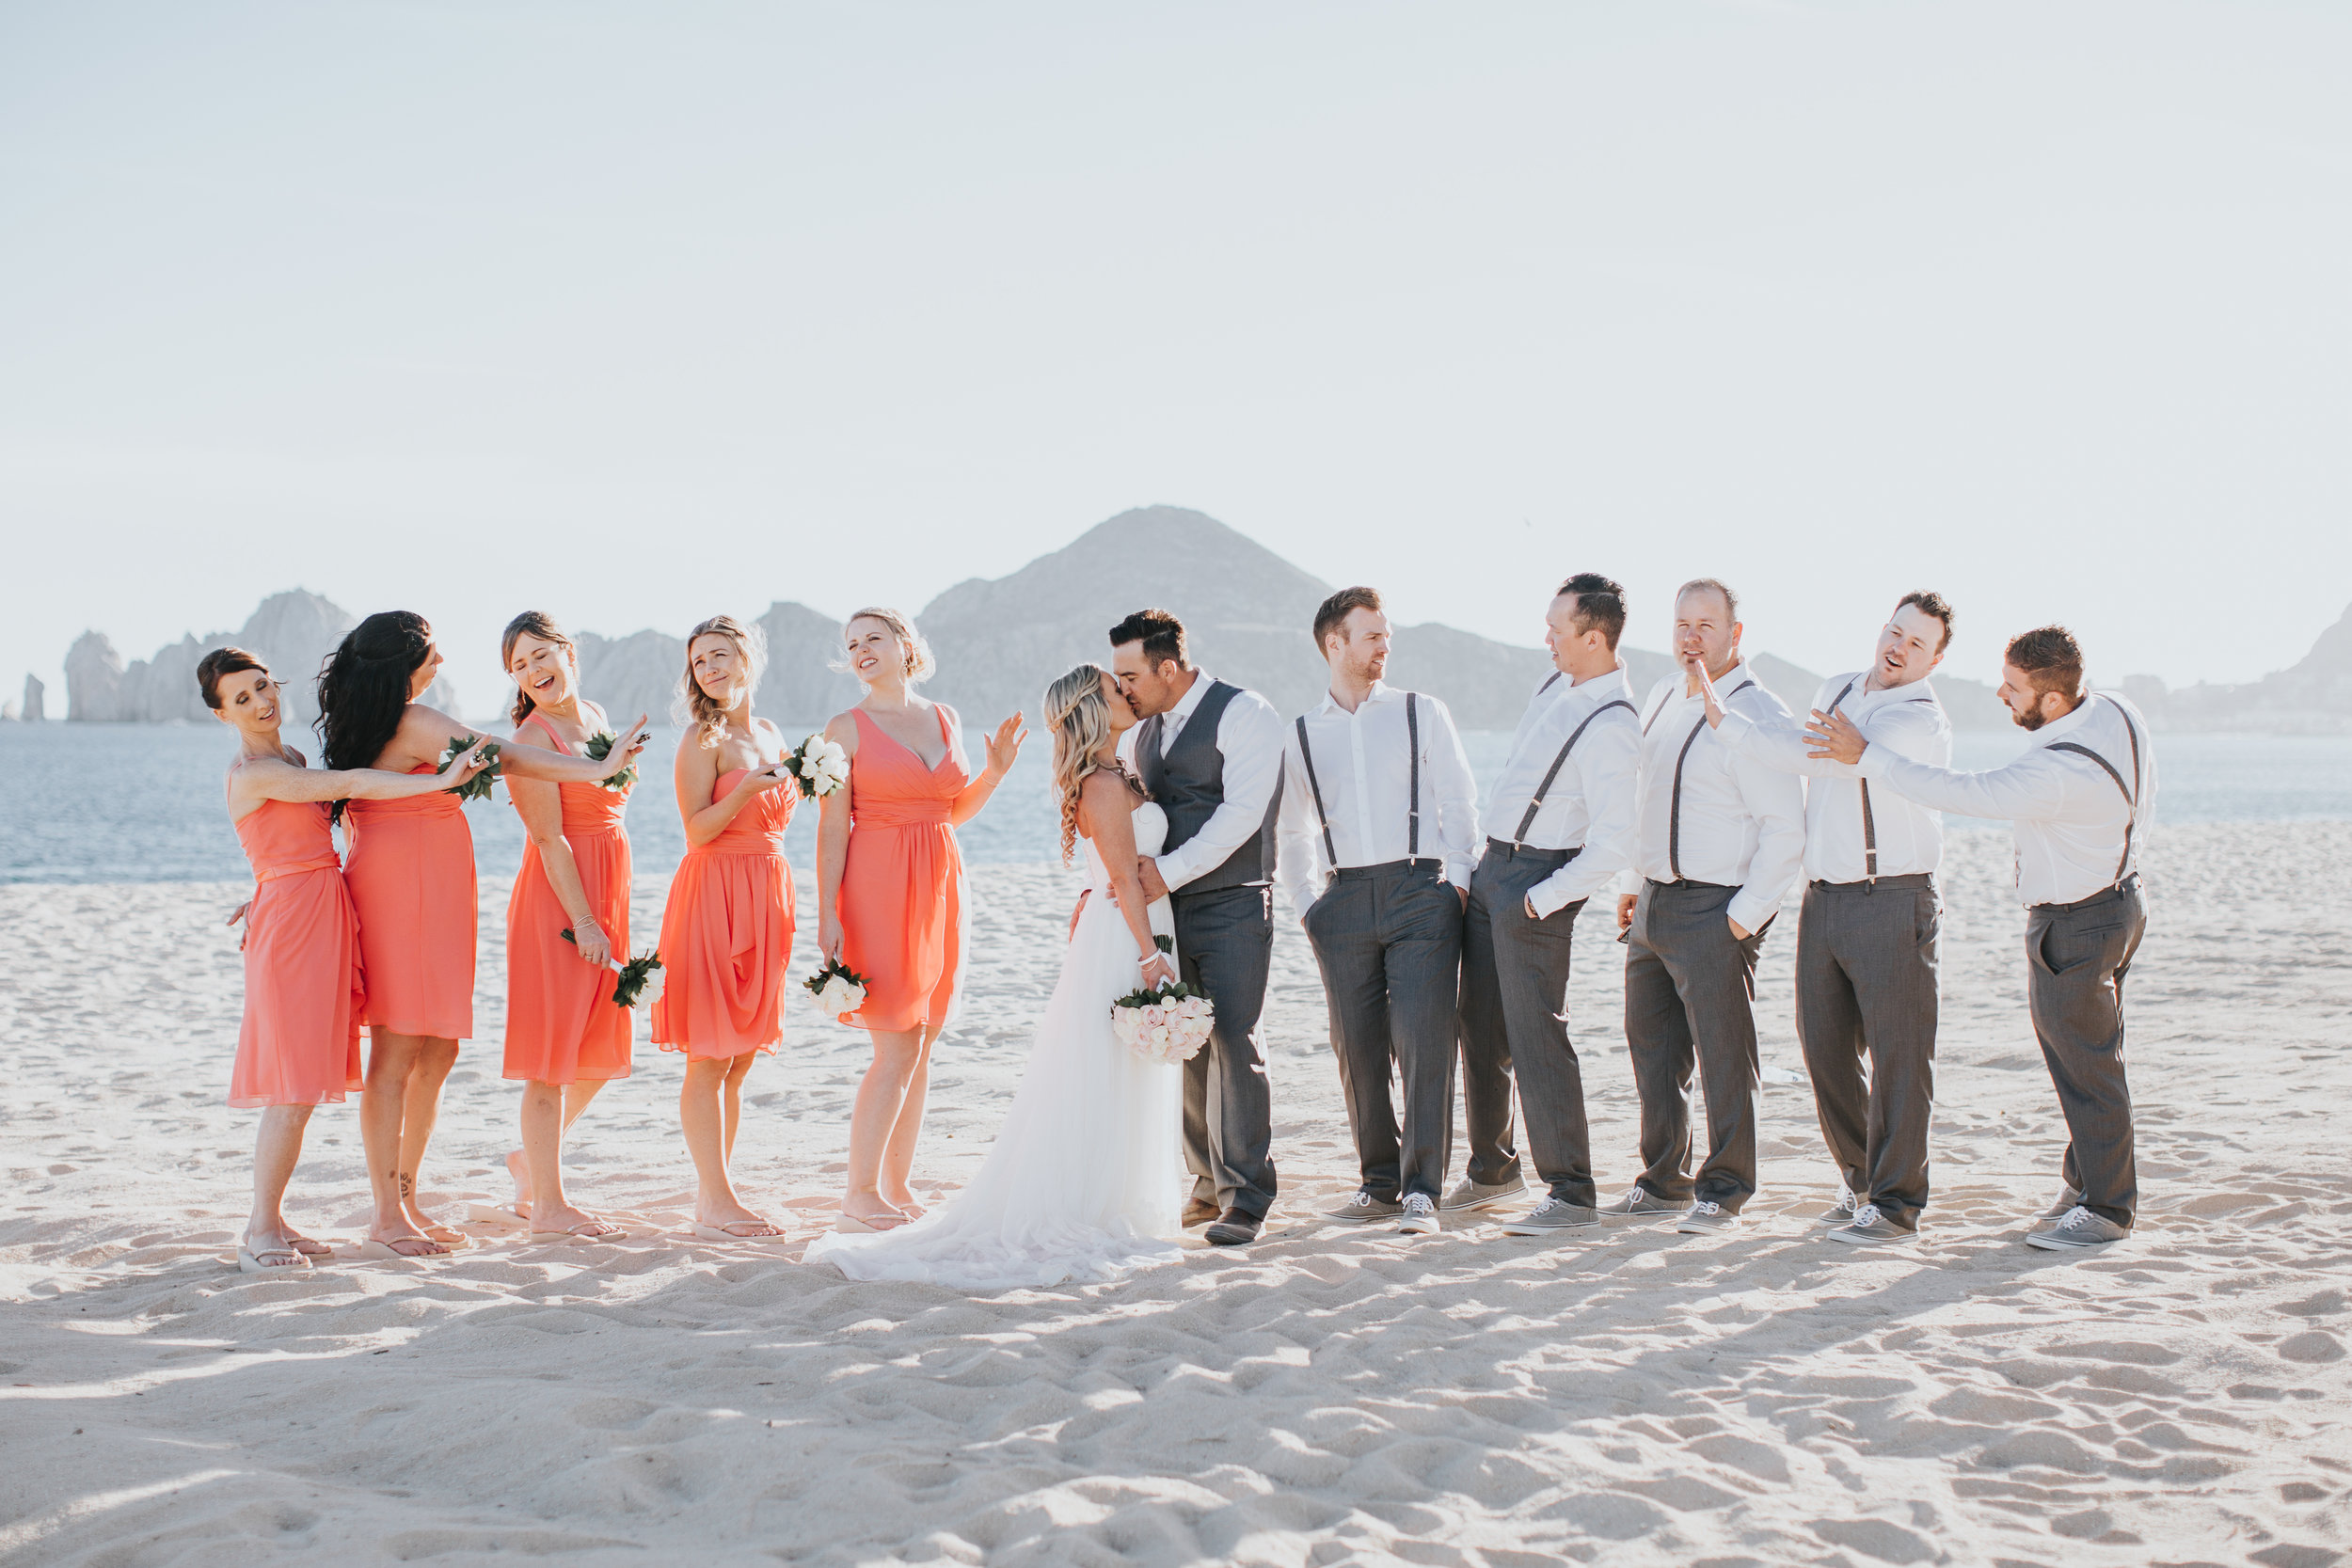 Ashleynickdestinationweddingmexicorivkahphotography-6.jpg